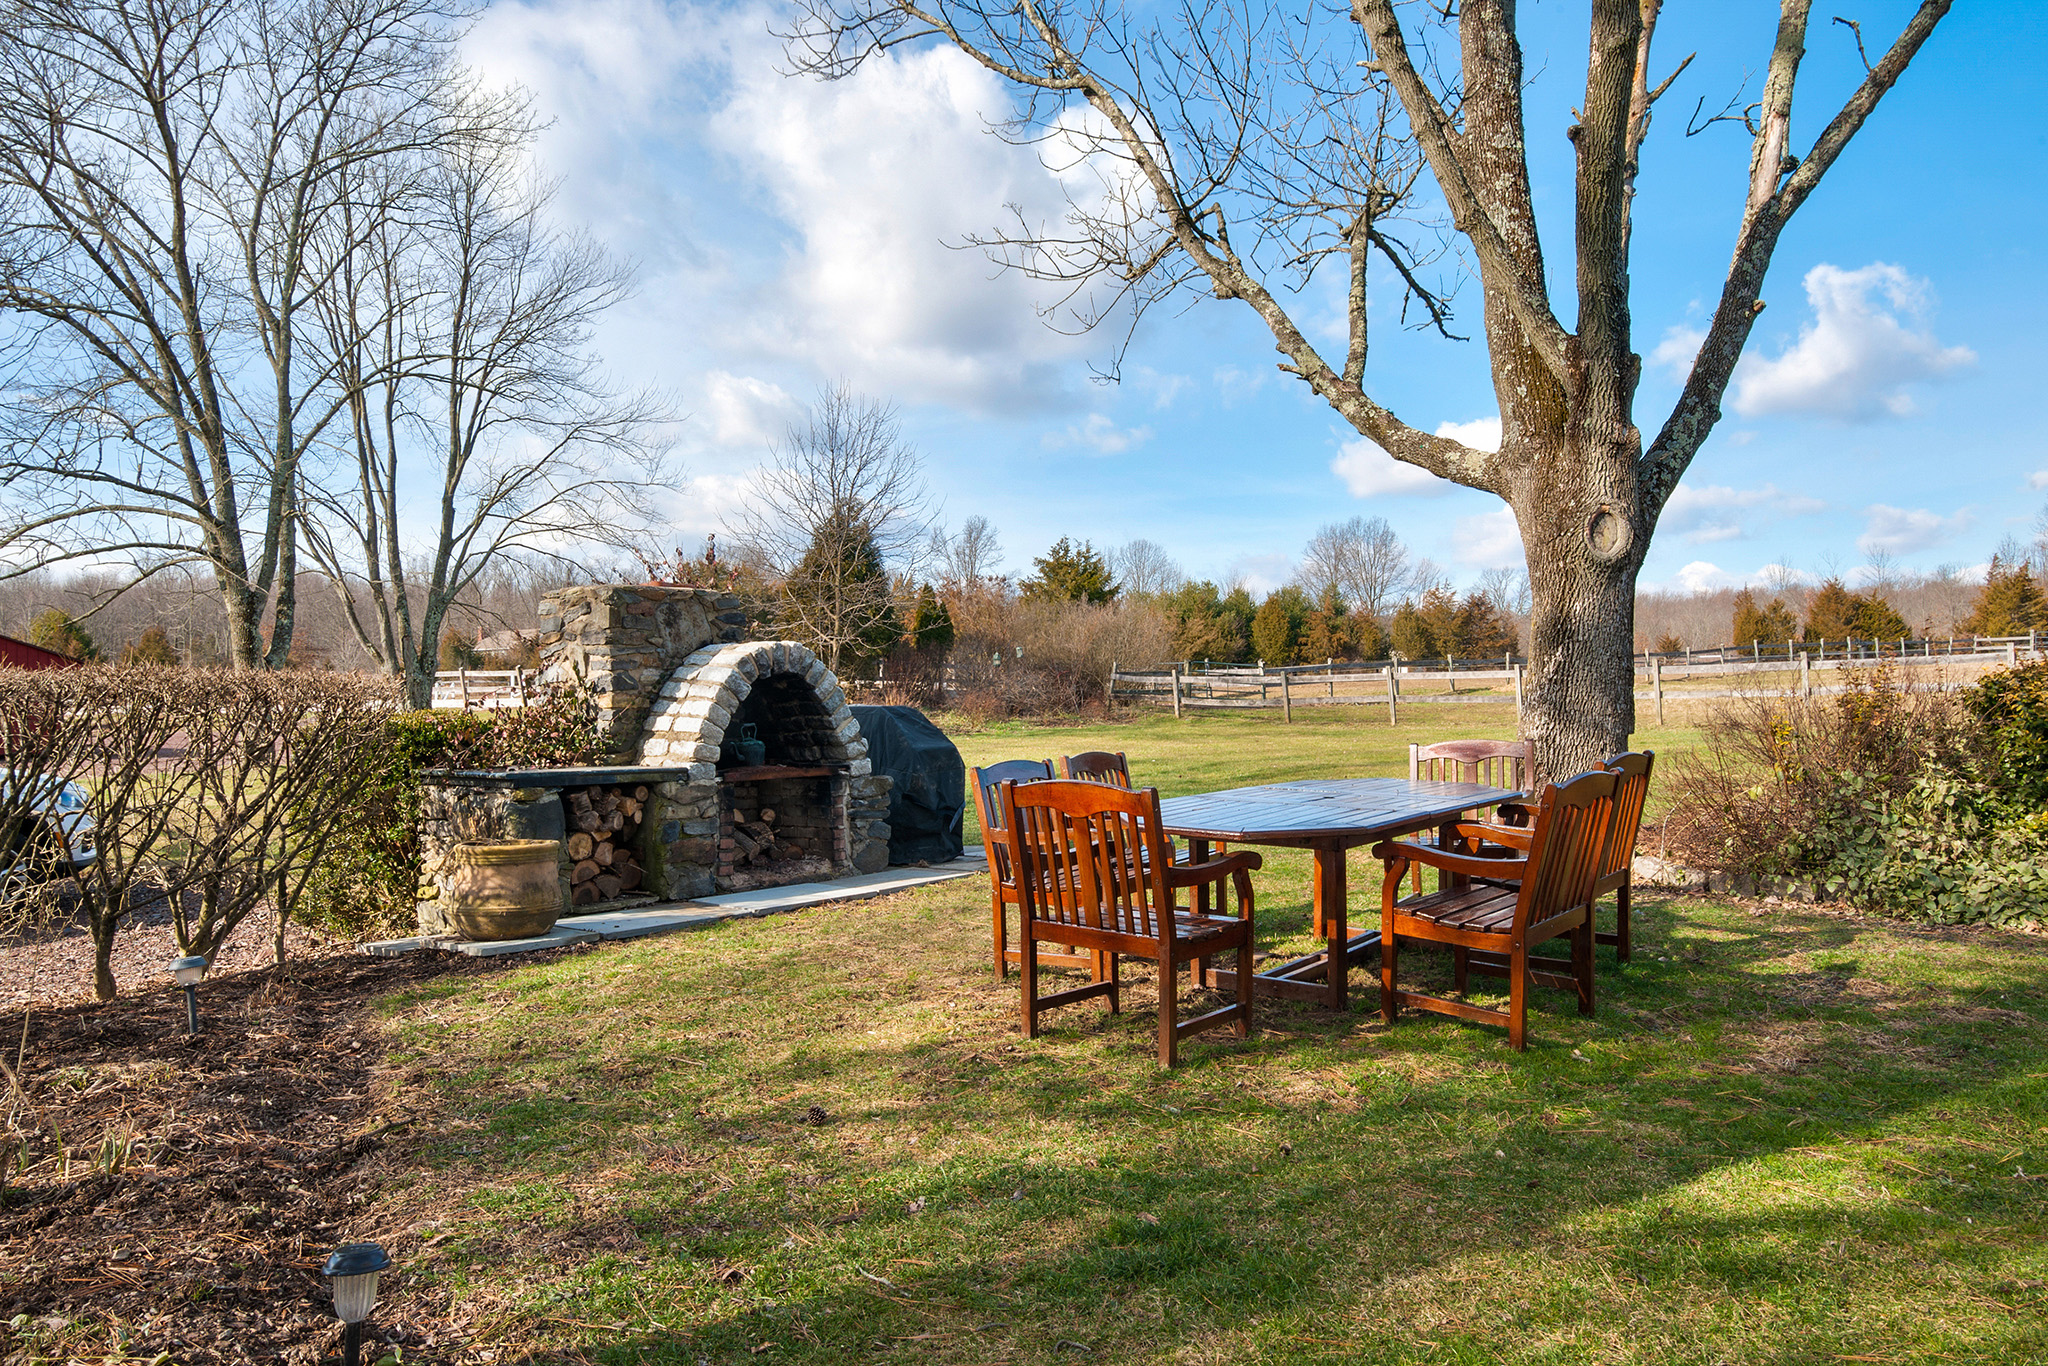 Al Fresco Dining Bucks County | Outdoor Fireplace Bucks County | Country Home Bucks County